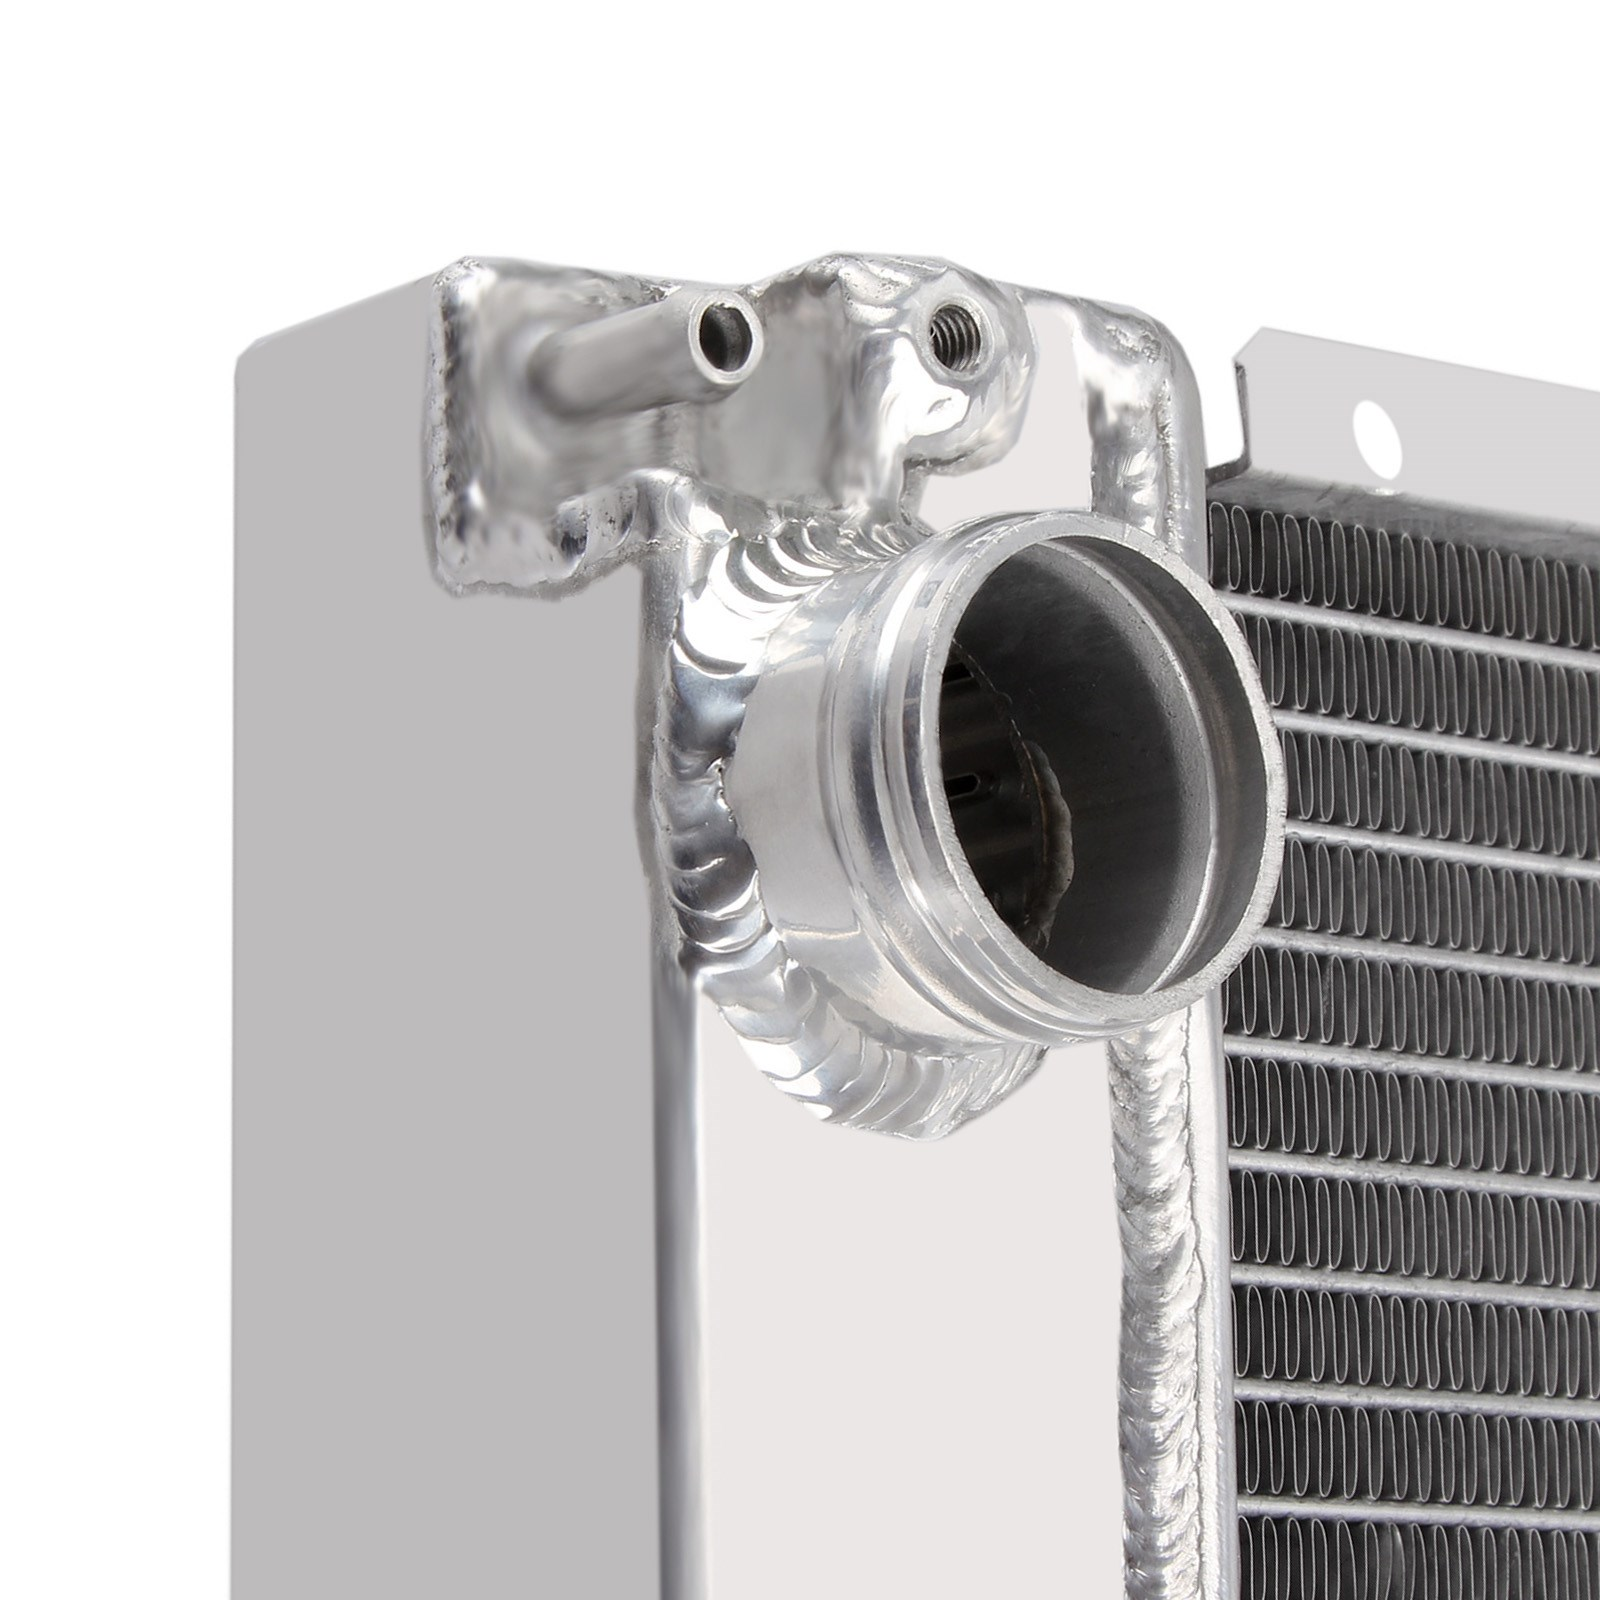 Dromedary-Best 1841 Full Aluminum Racing Radiator For Bmw M3 325 E32 1992-2000 Mt-5